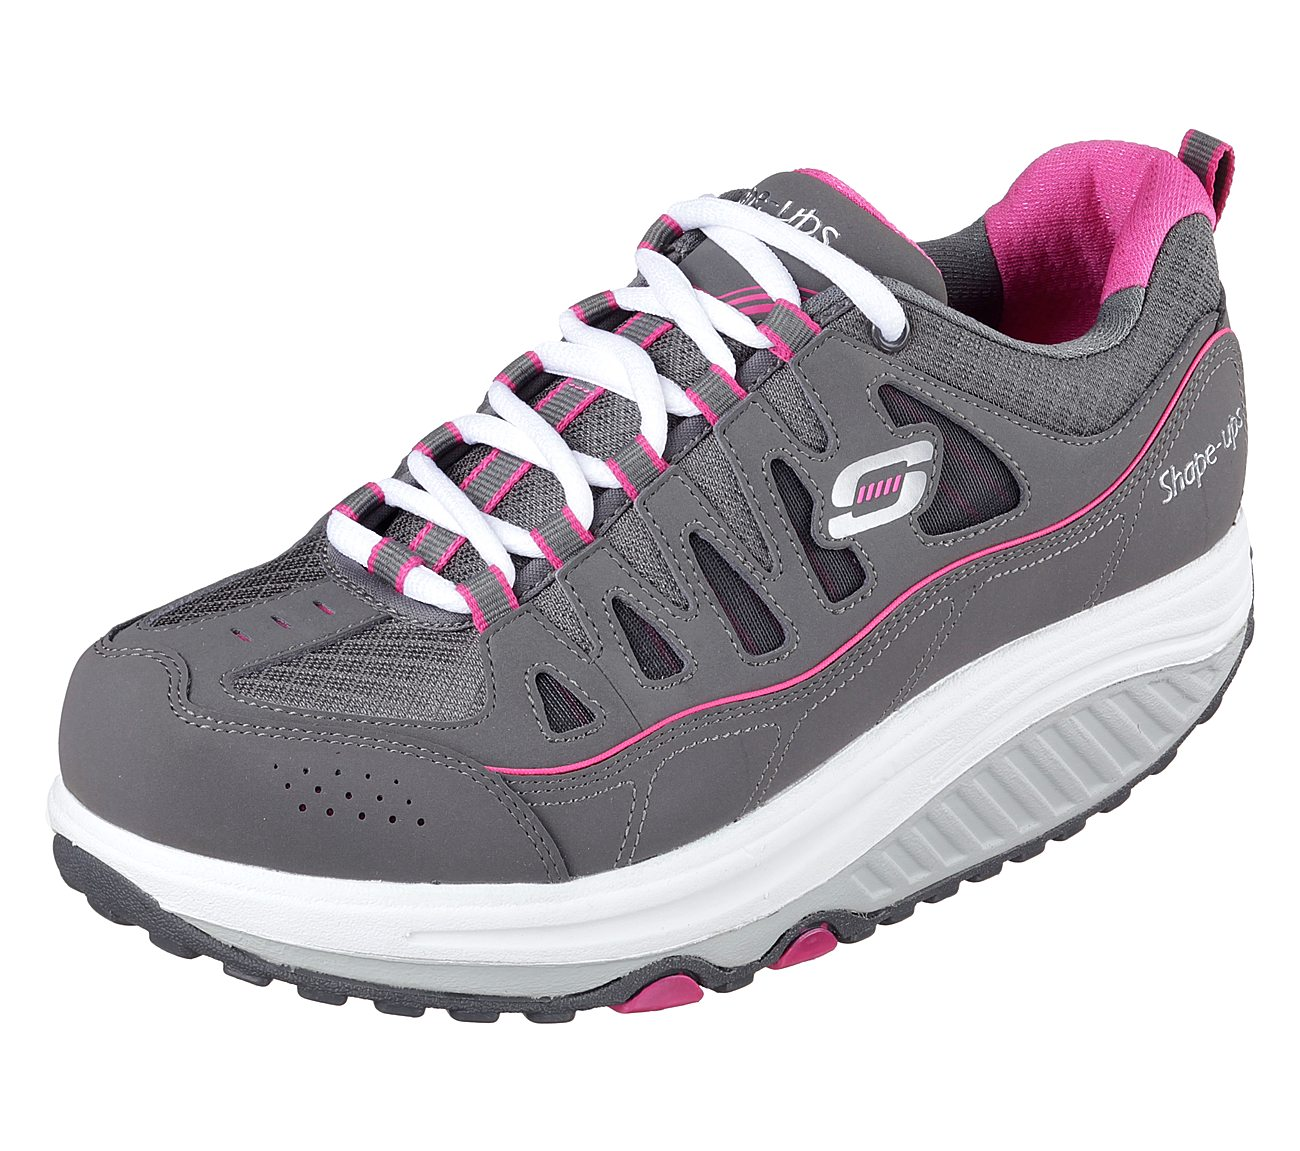 cf9f838393dd Buy SKECHERS Shape-ups 2.0 - Comfort Stride Shape-ups Shoes only  100.00